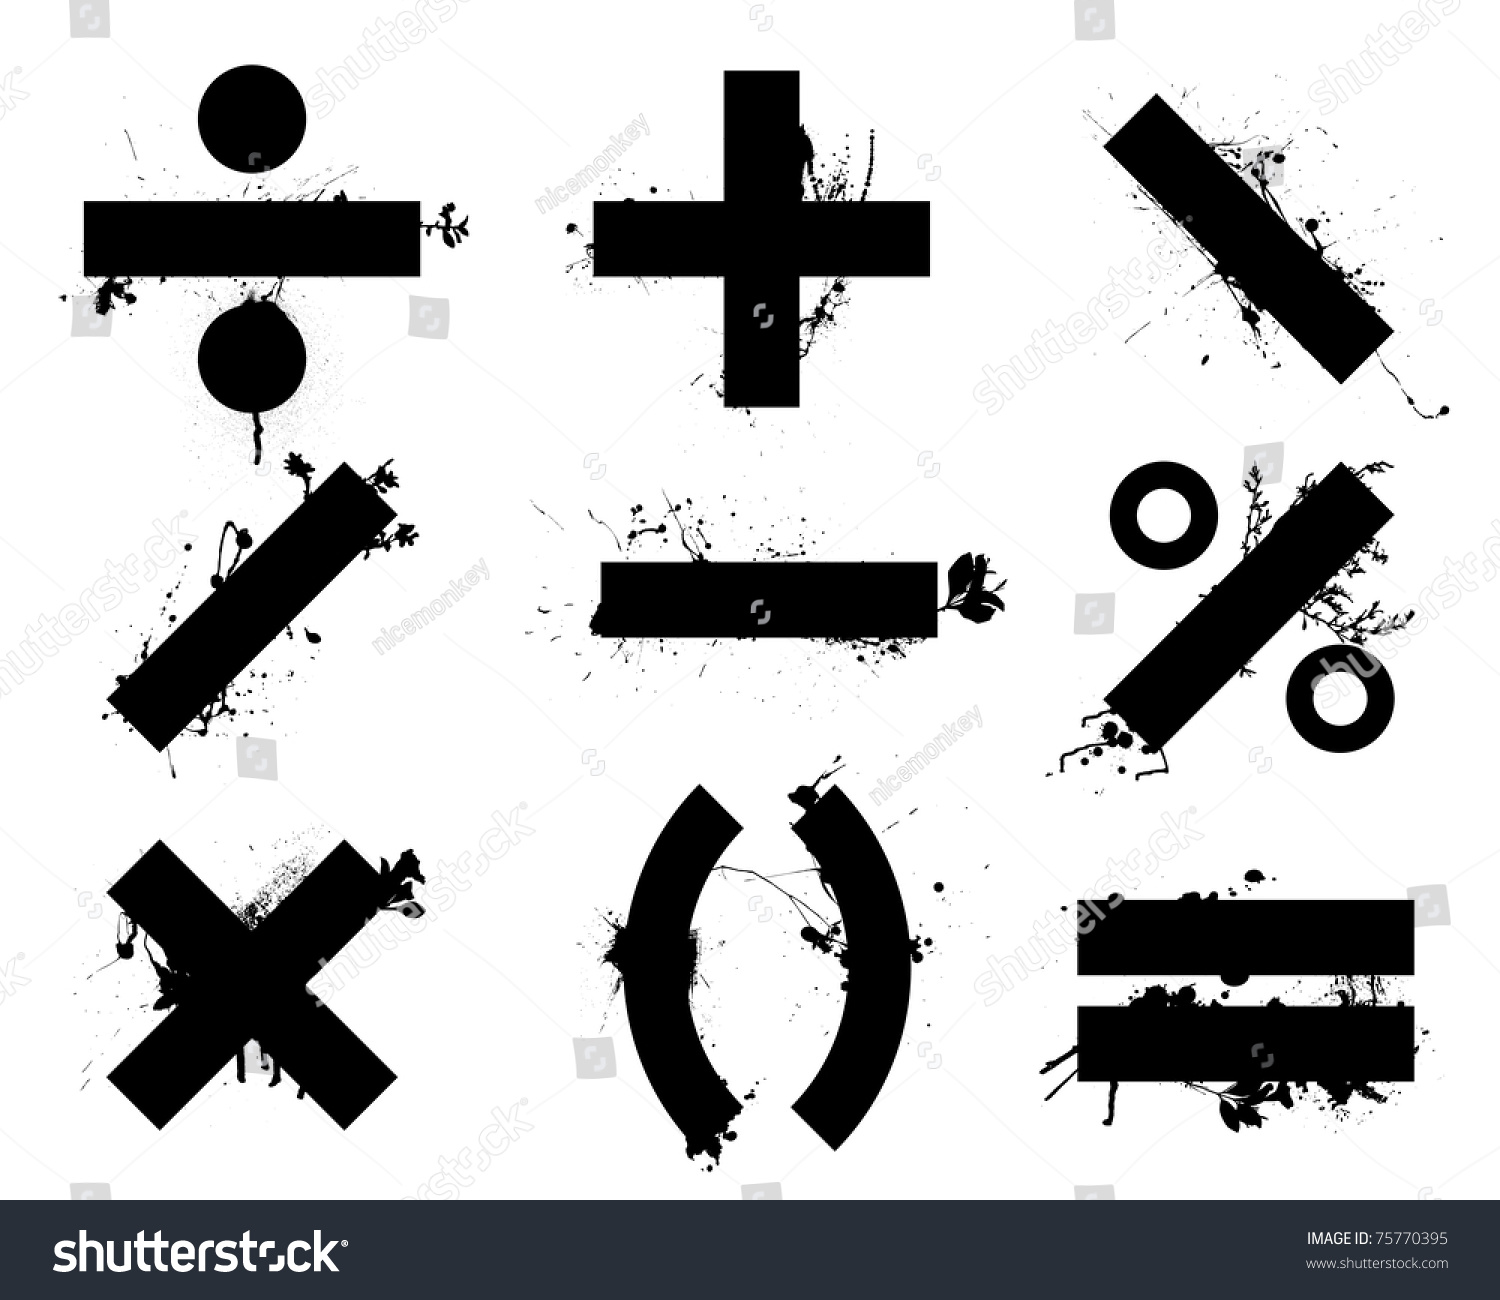 X maths symbol choice image symbols and meanings grunge black school math symbols icons stock illustration 75770395 grunge black school math symbols or icons biocorpaavc Image collections